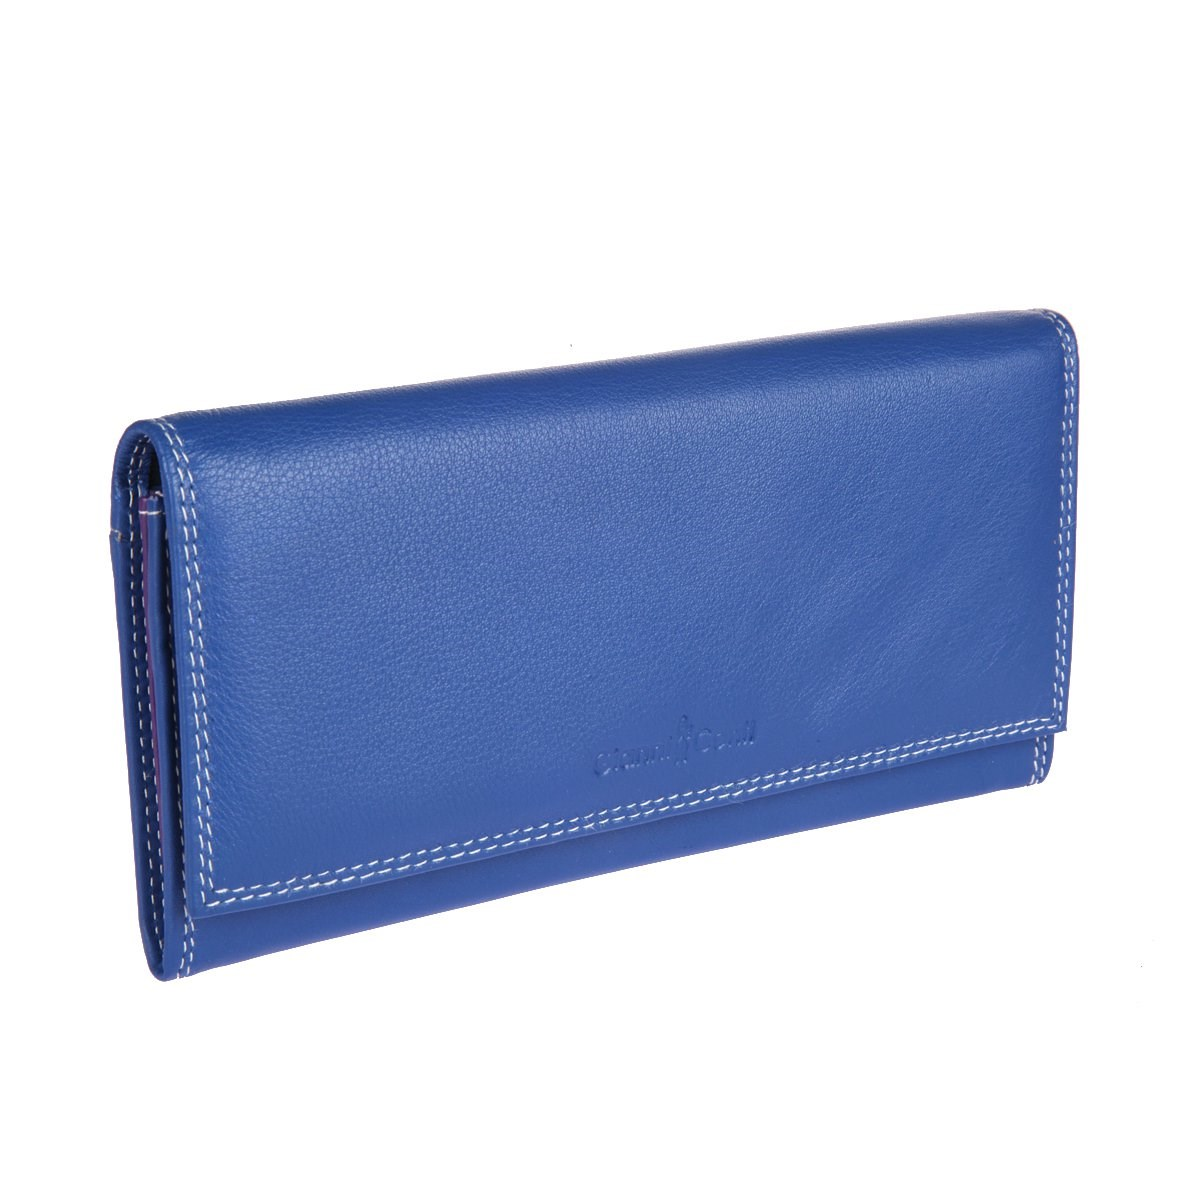 Coin Purse Gianni Conti 1807403 El. Blue multi simline vintage genuine crazy horse cow leather men men s long hasp wallet wallets purse zipper coin pocket holder with chain